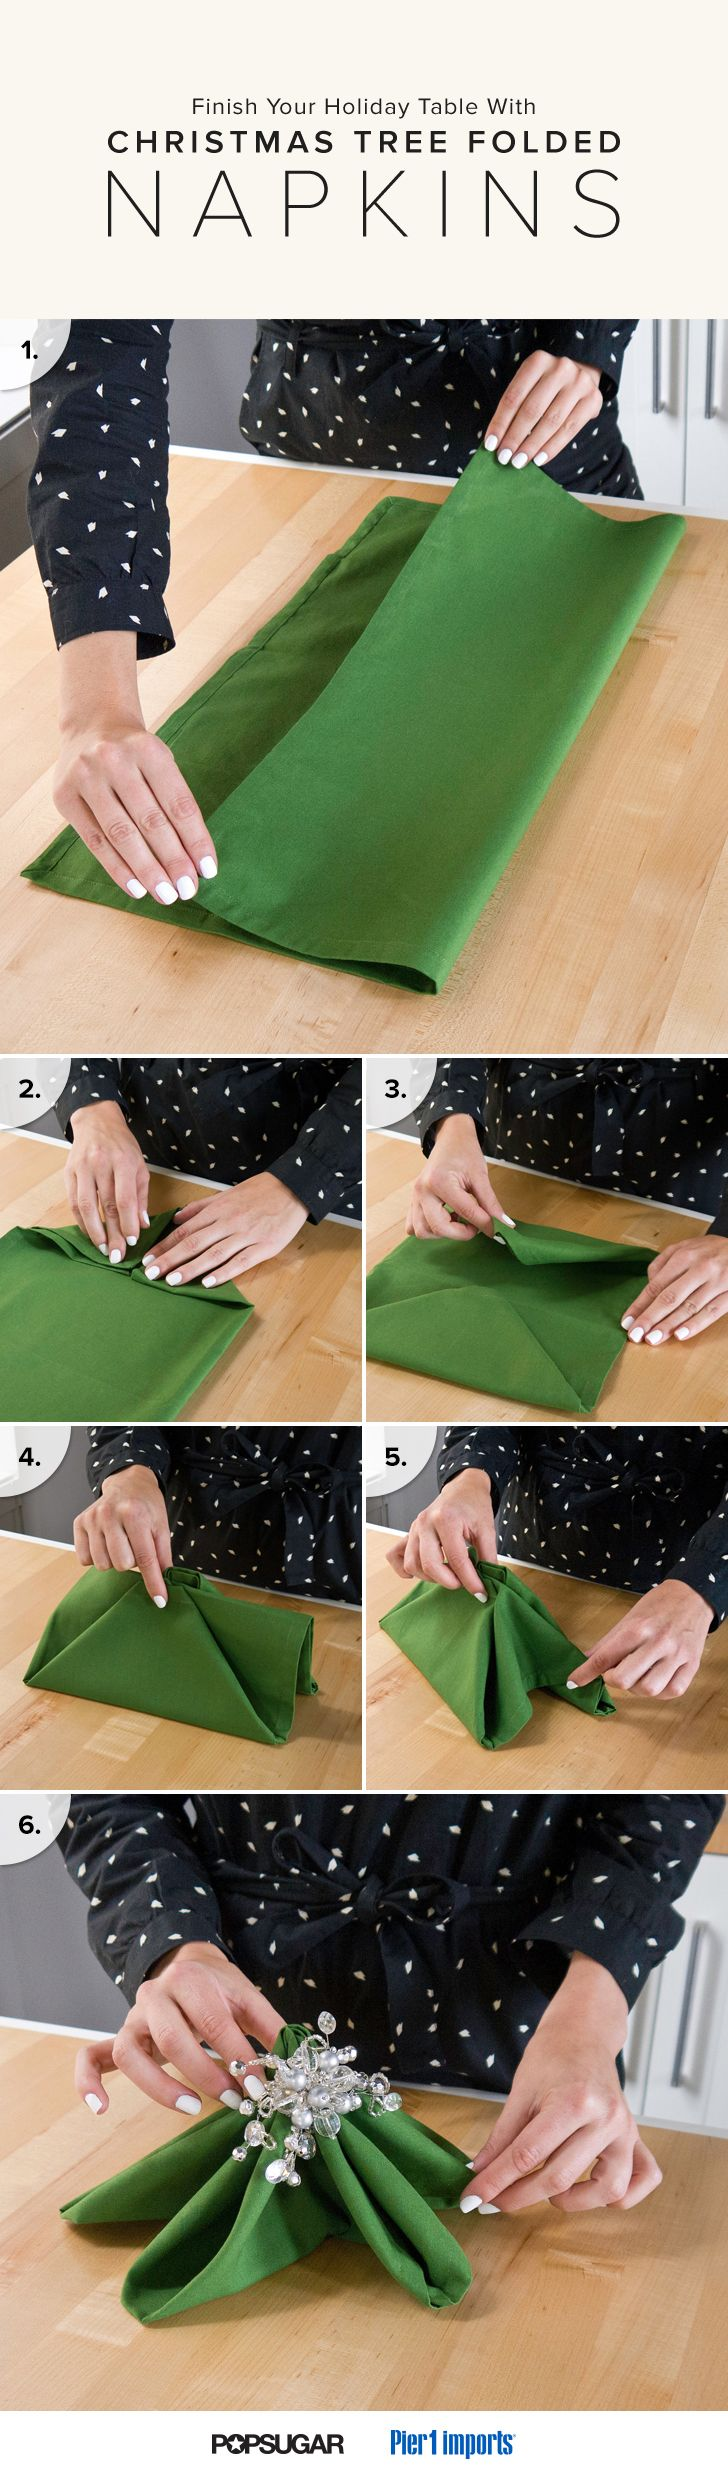 Finish Your Holiday Table With Christmas Tree Folded Napkins